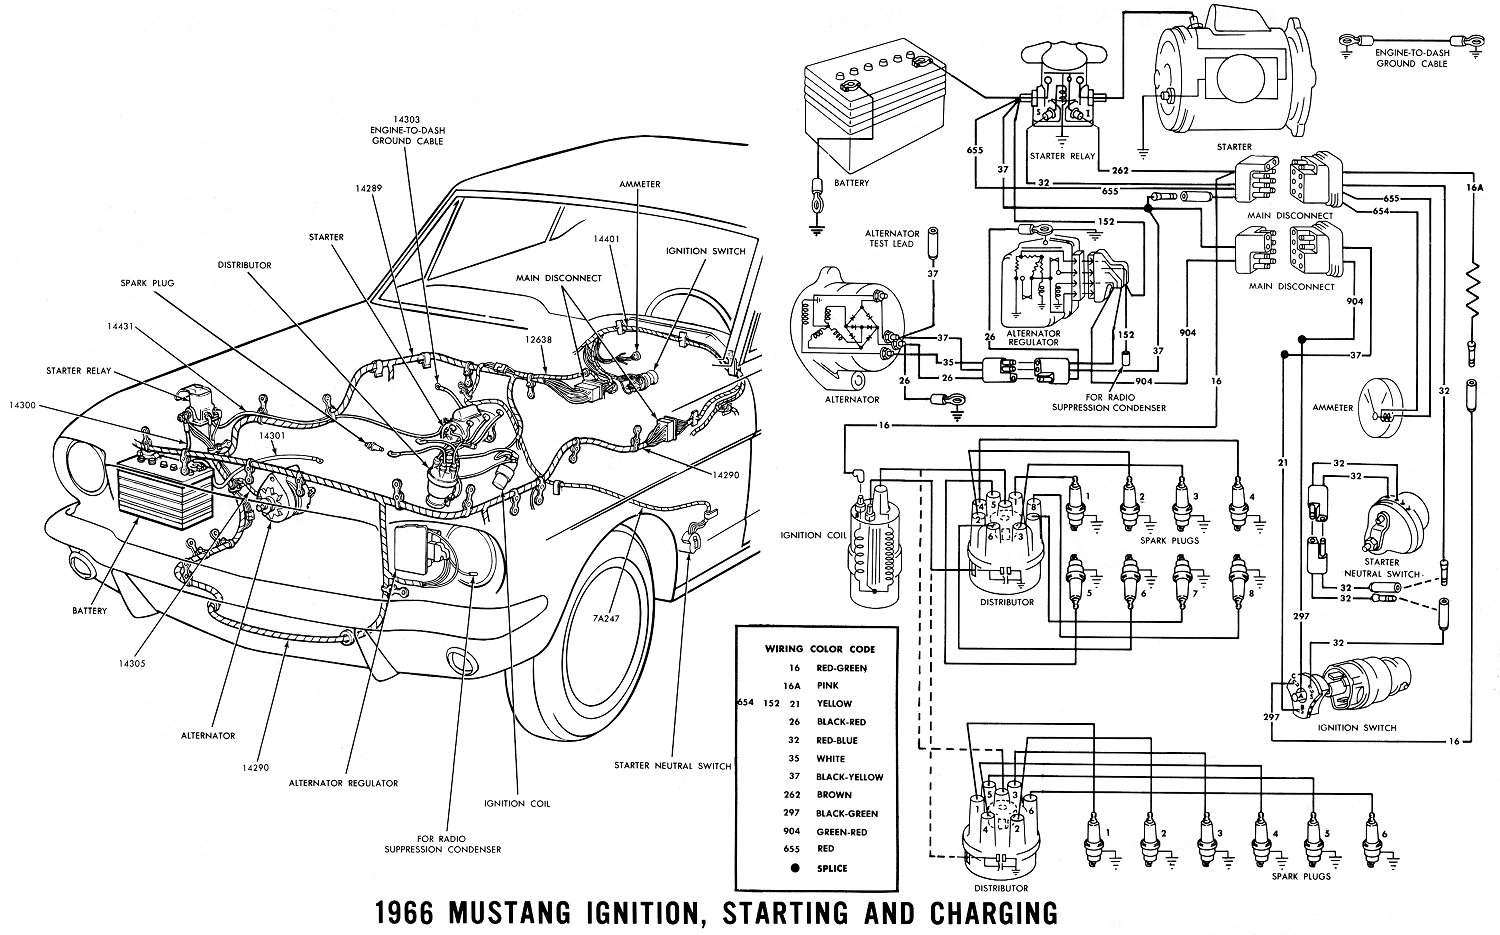 66ignit 1966 mustang wiring diagrams average joe restoration 66 mustang engine wiring diagram free at bayanpartner.co